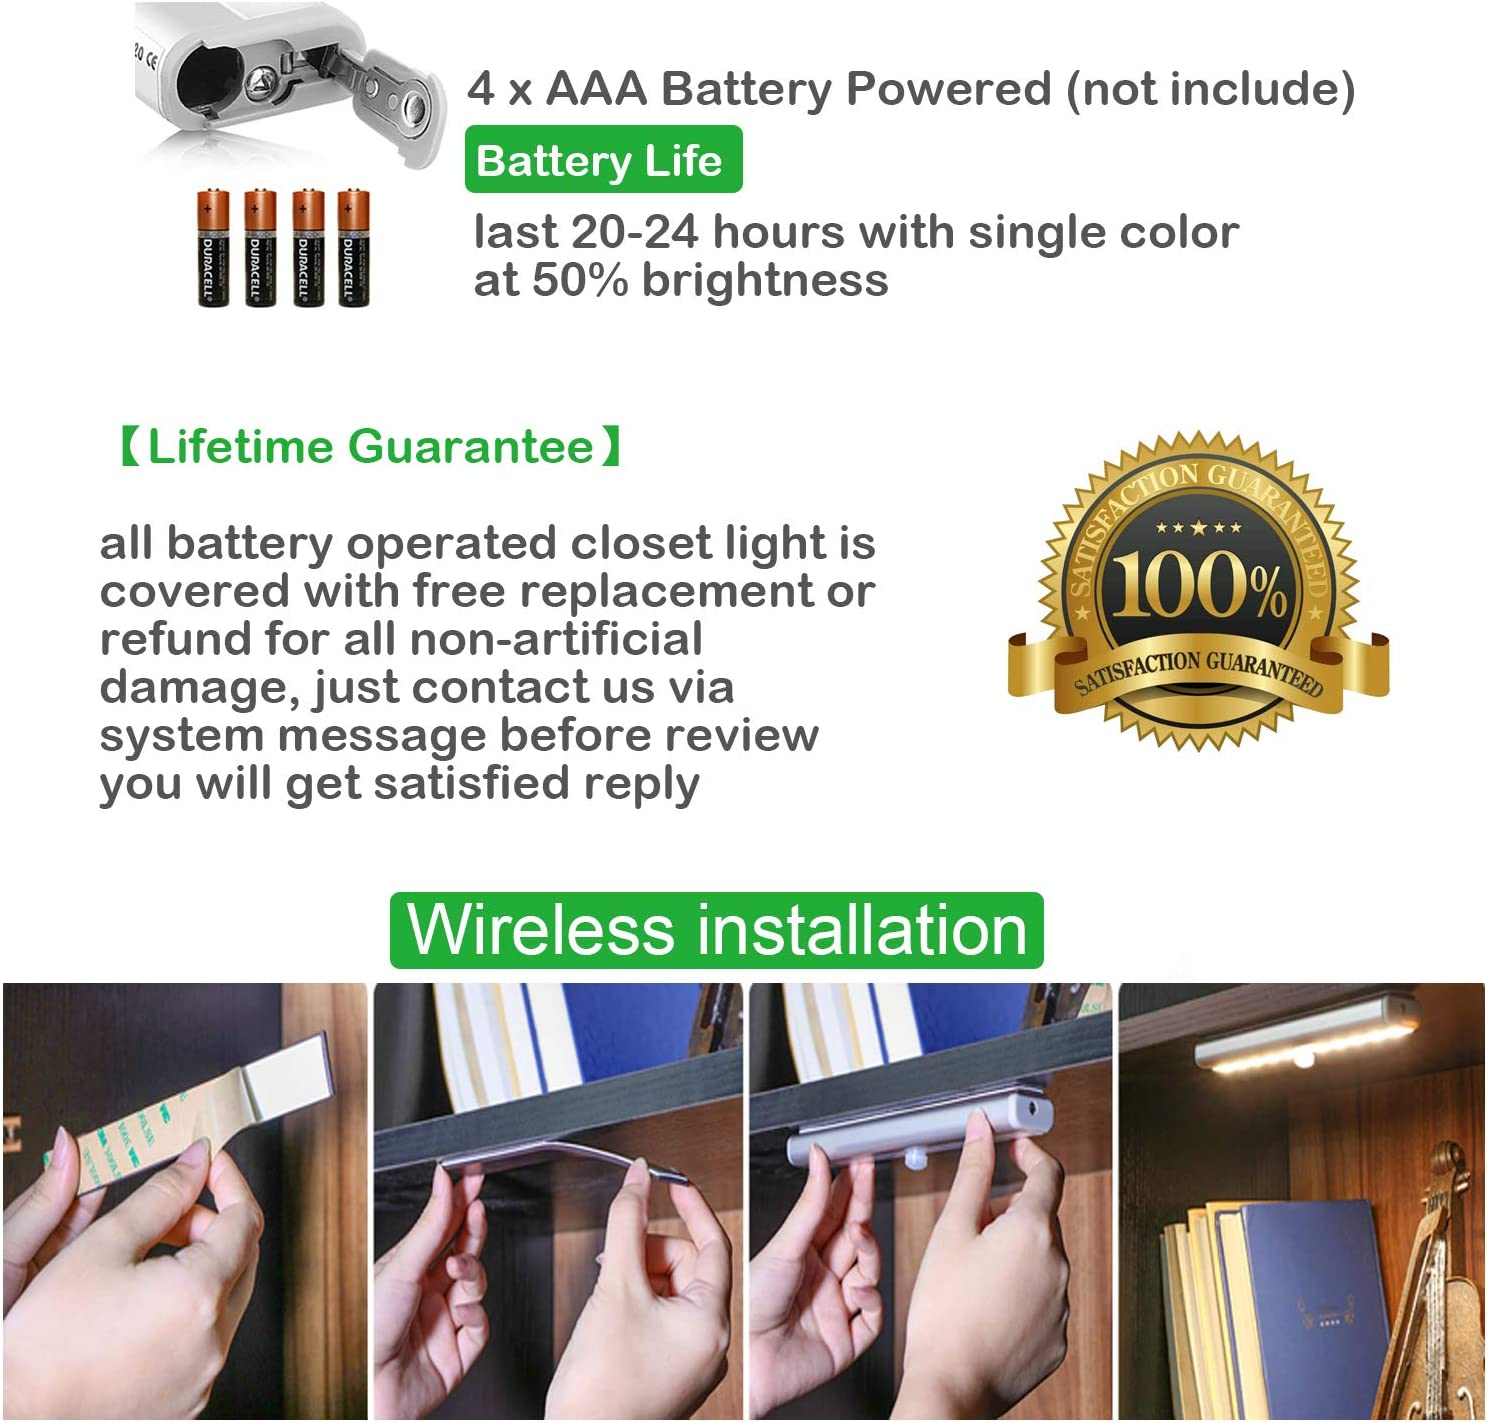 SZOKLED Wireless Under Cabinet Lighting Battery Operated 20 LEDs Remote Control Closet Lights with Timer Dimming Touch Switch Night Light Bars for Garage Pantry Stairs Hallway Shelf 3 Colors 4 Packs